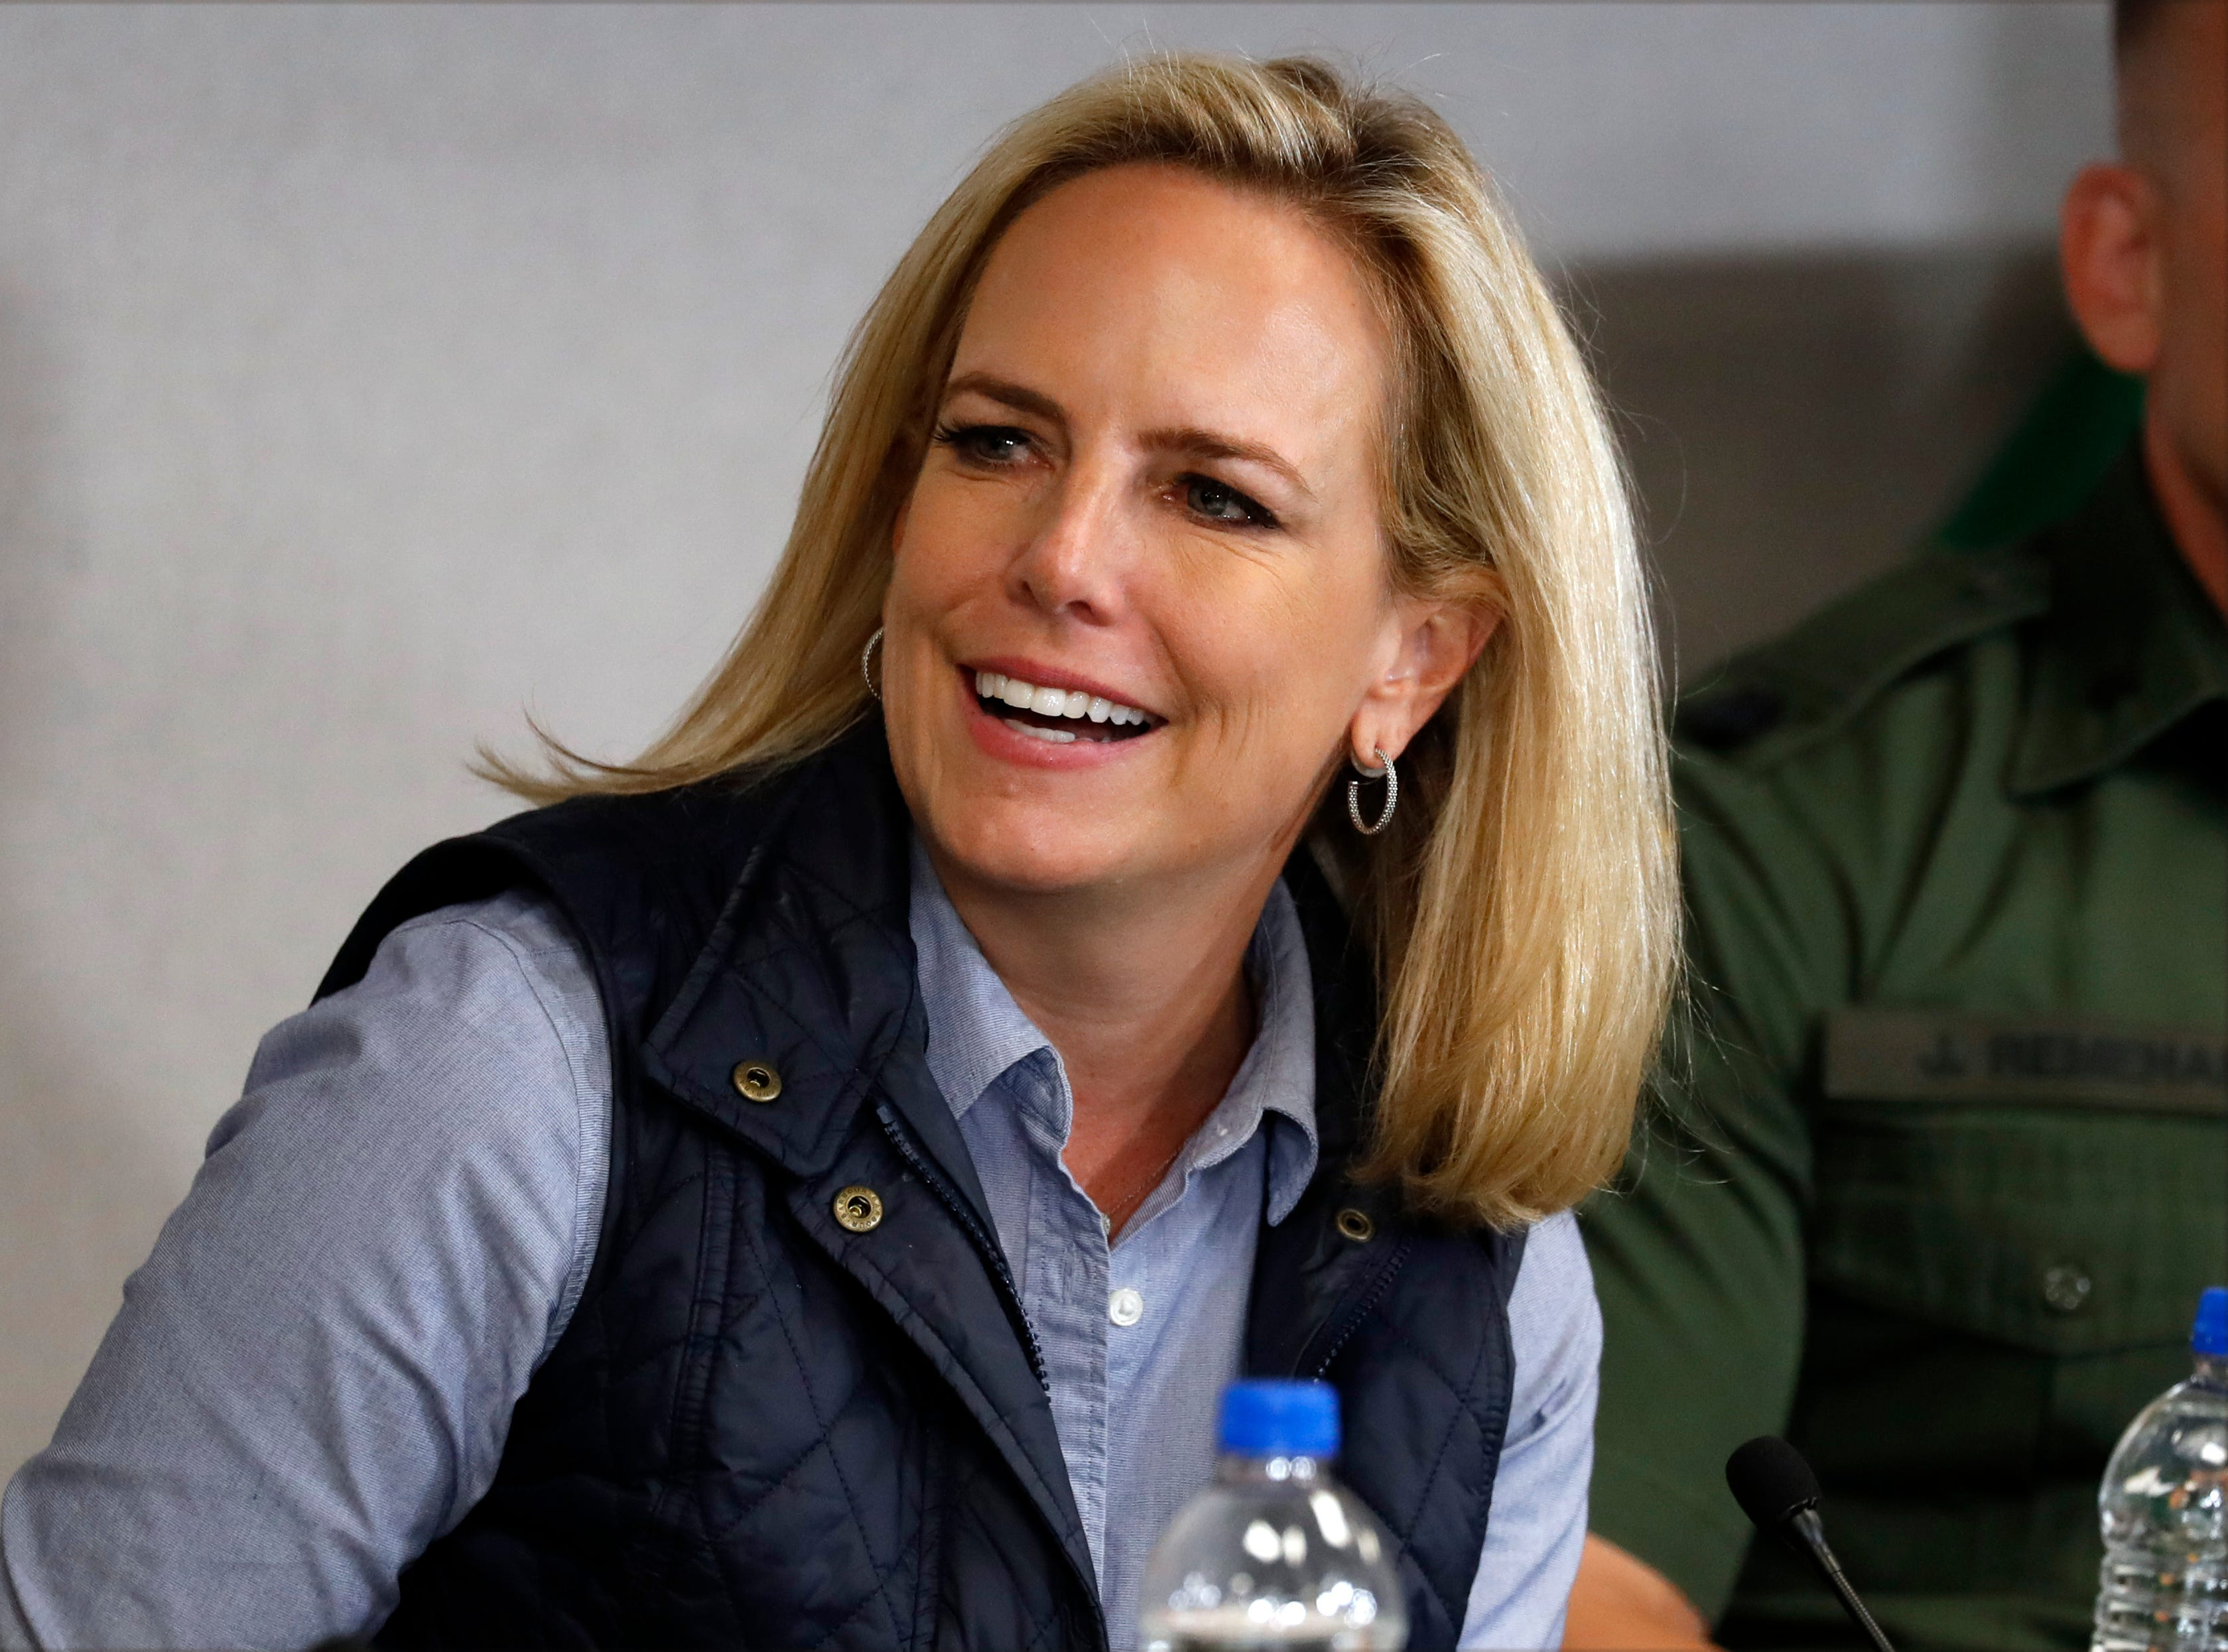 Homeland Security Secretary Kirstjen Nielsen listens to President Donald Trump at a roundtable on immigration and border security at the U.S. Border Patrol Calexico Station in Calexico, California, April 5, 2019.